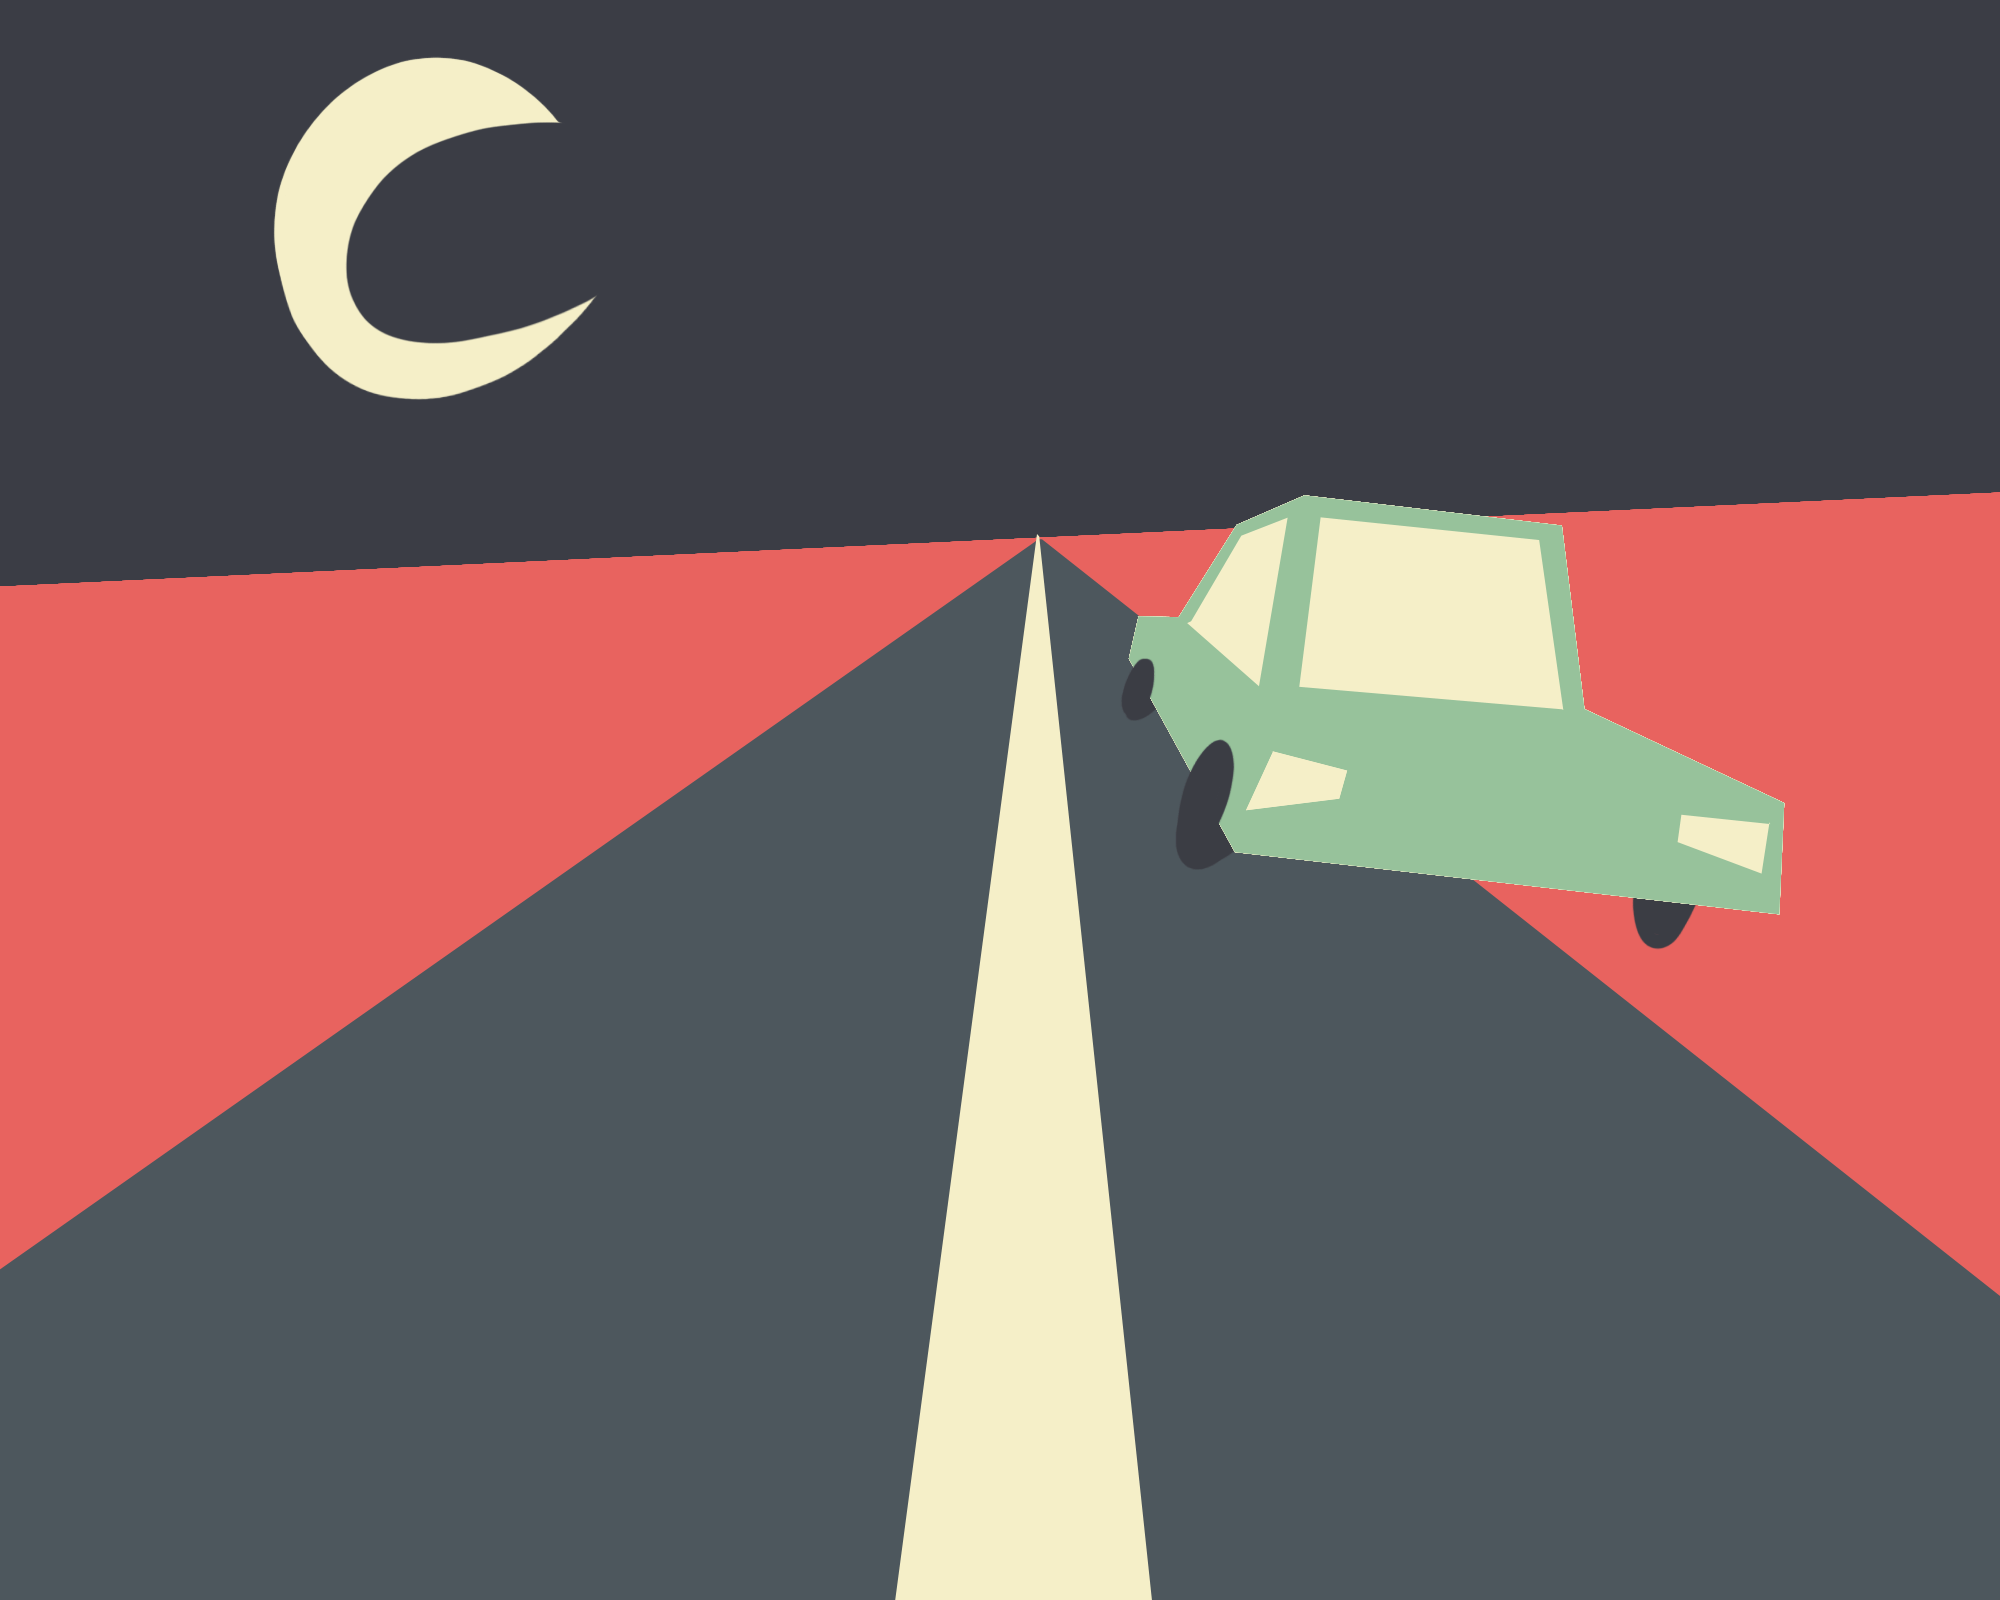 Falling asleep behind the wheel: Drifting from your lane, tailgating, or hitting shoulder strip.